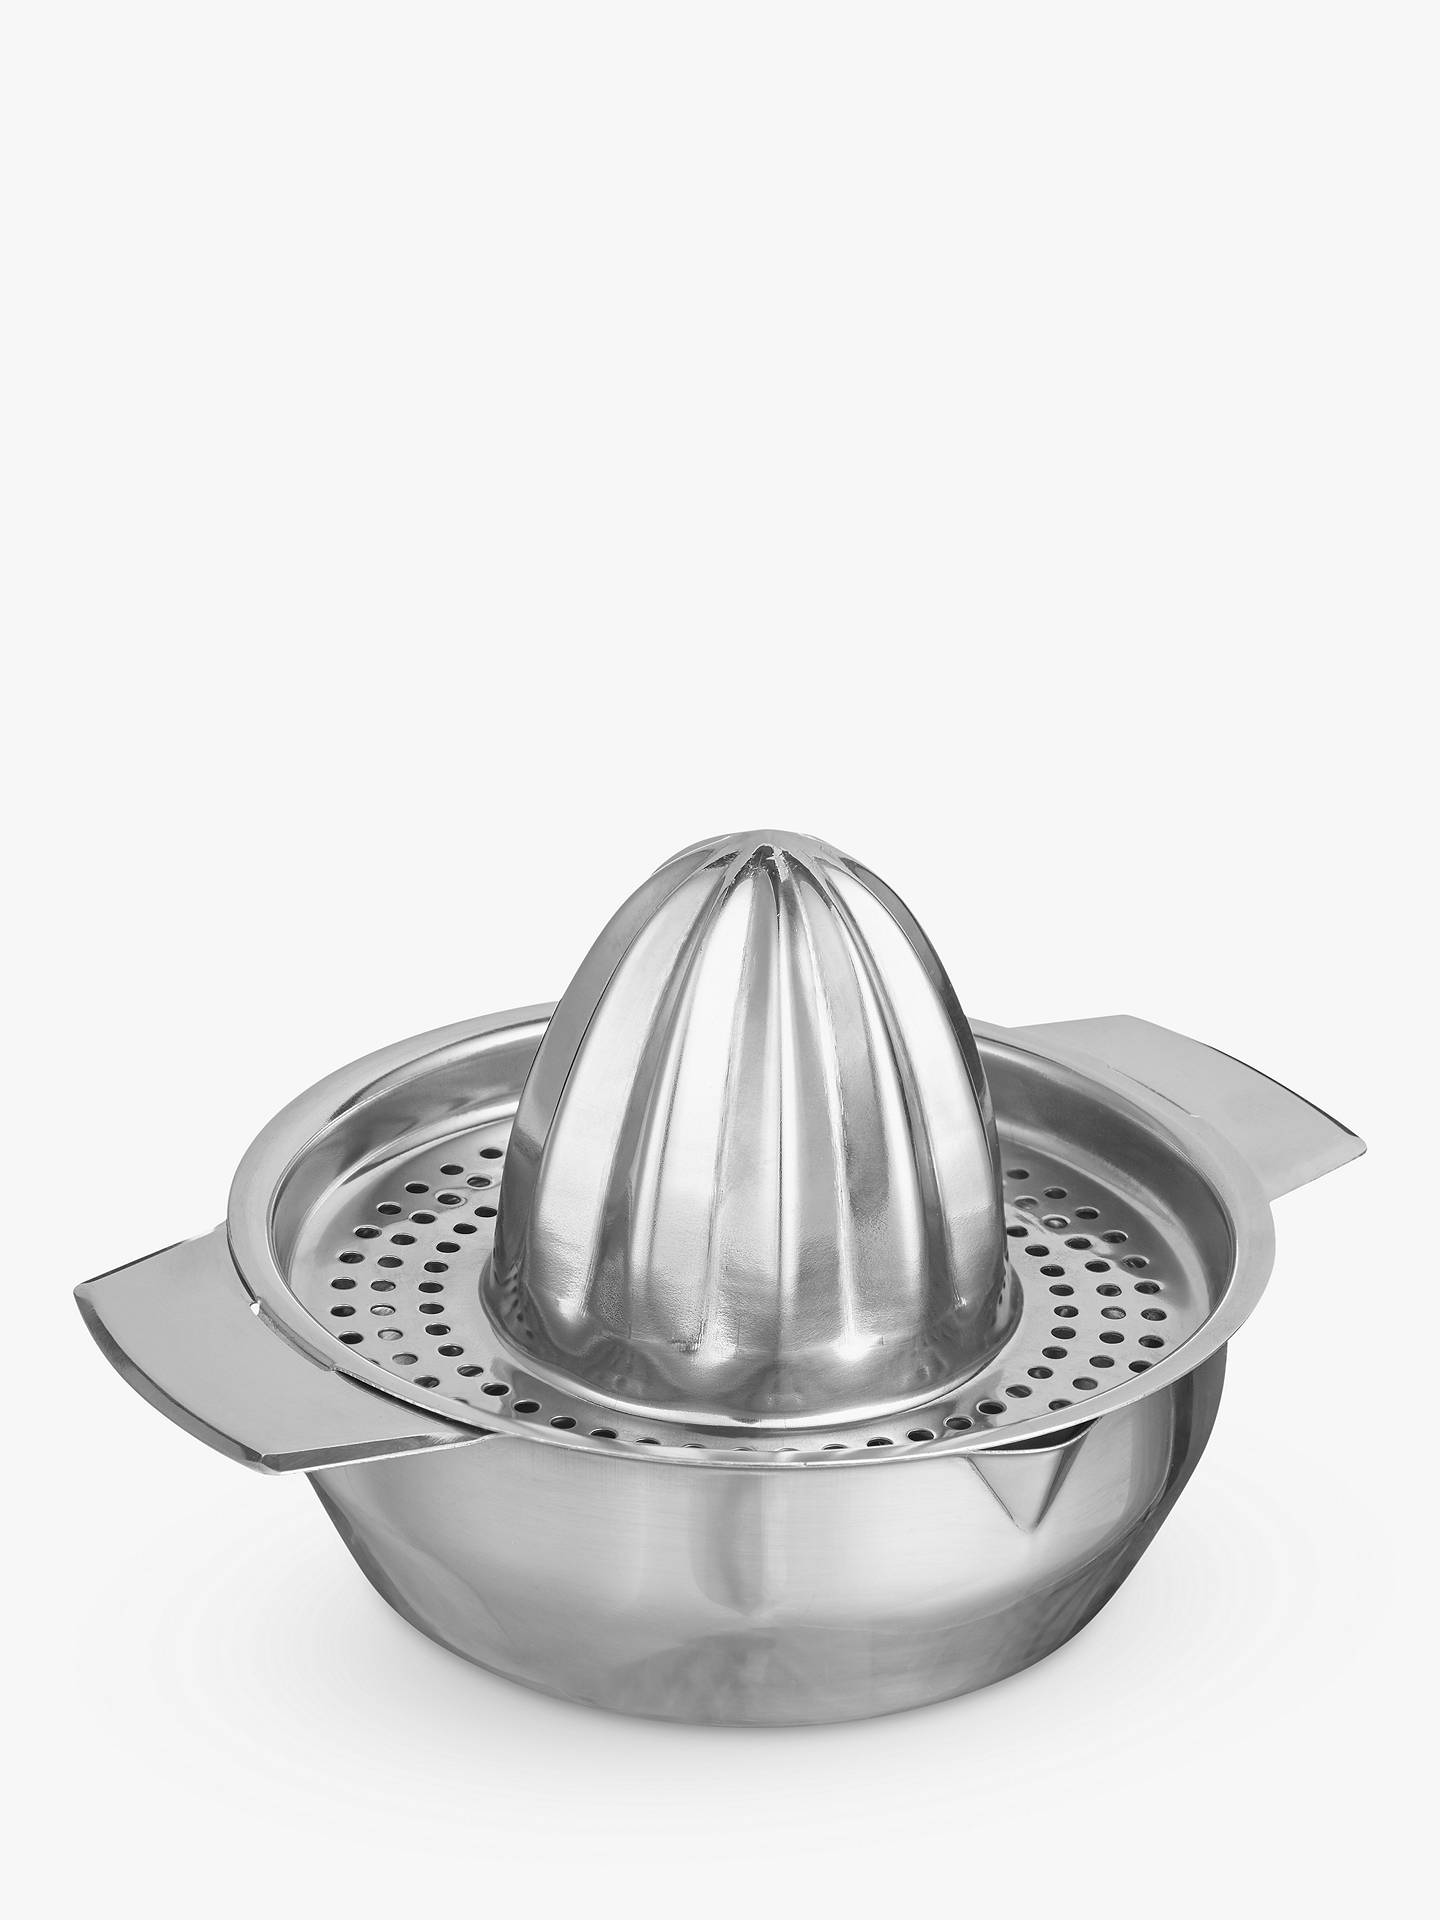 BuyJohn Lewis & Partners Stainless Steel Citrus Squeezer Online at johnlewis.com